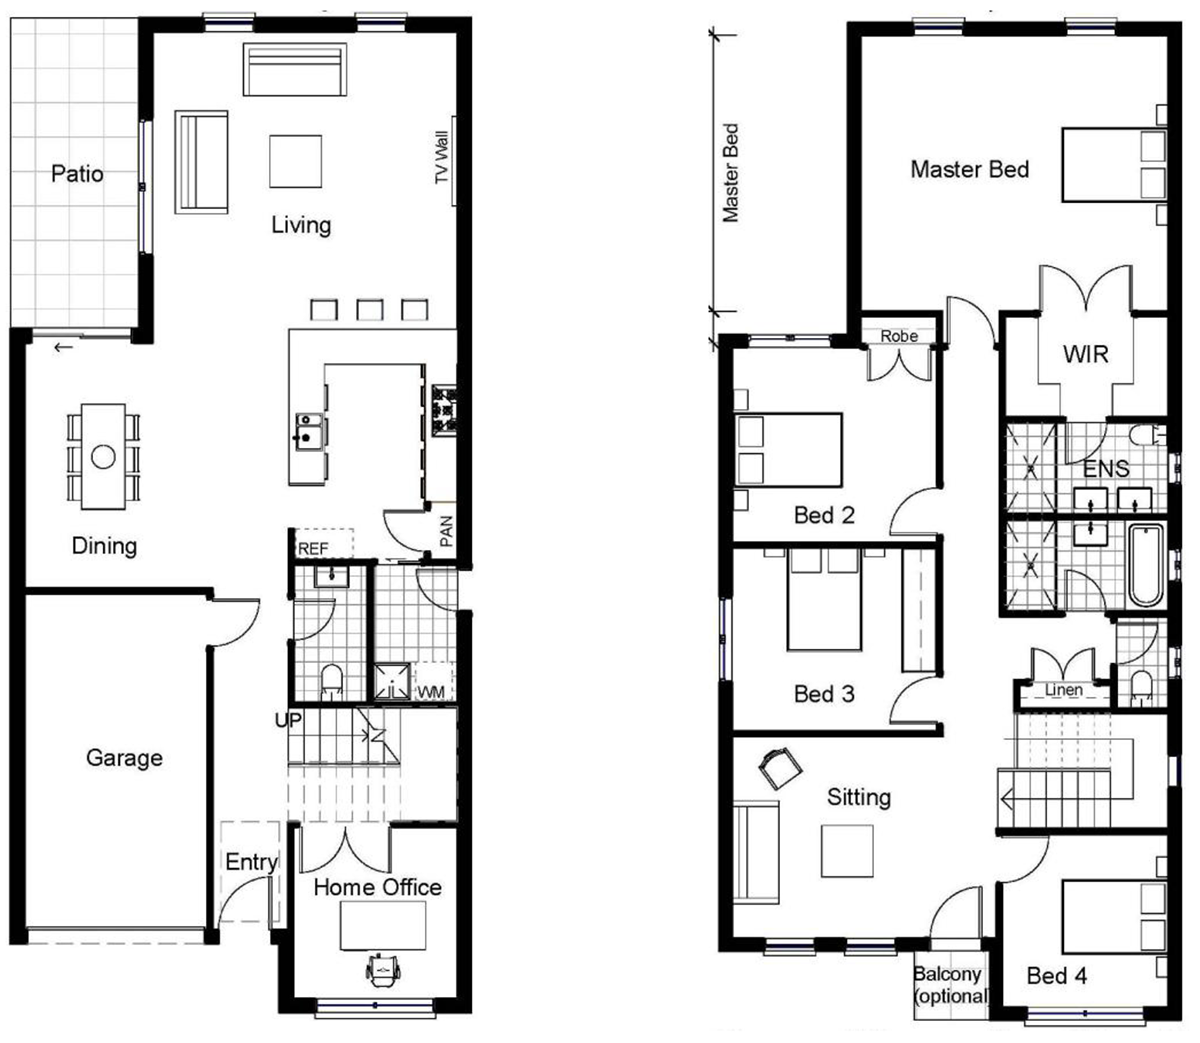 Pin By Wendy Simpson On Floor Plans I Like In 2019 House Plans